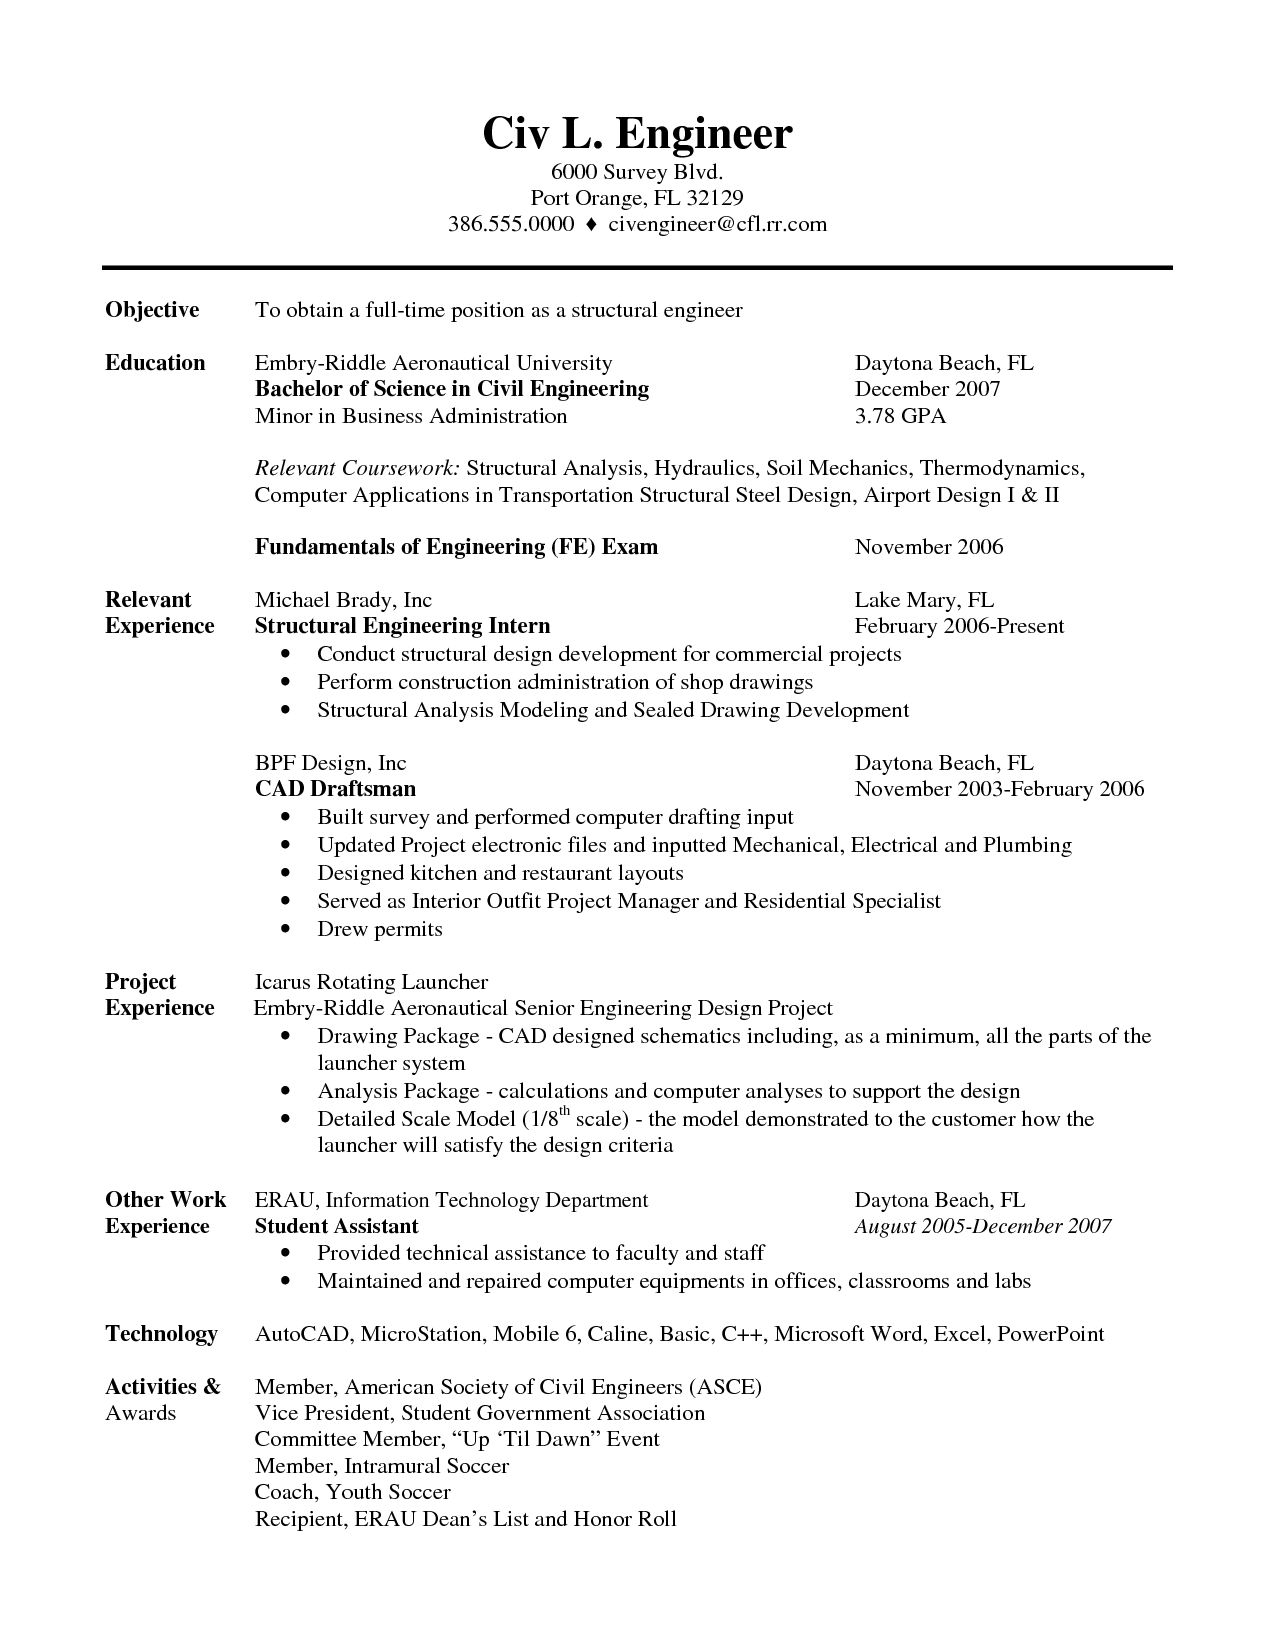 Mechanical Engineering Sample Resume Alluring Image Result For Mechanical Engineering Student Resume  Rest .